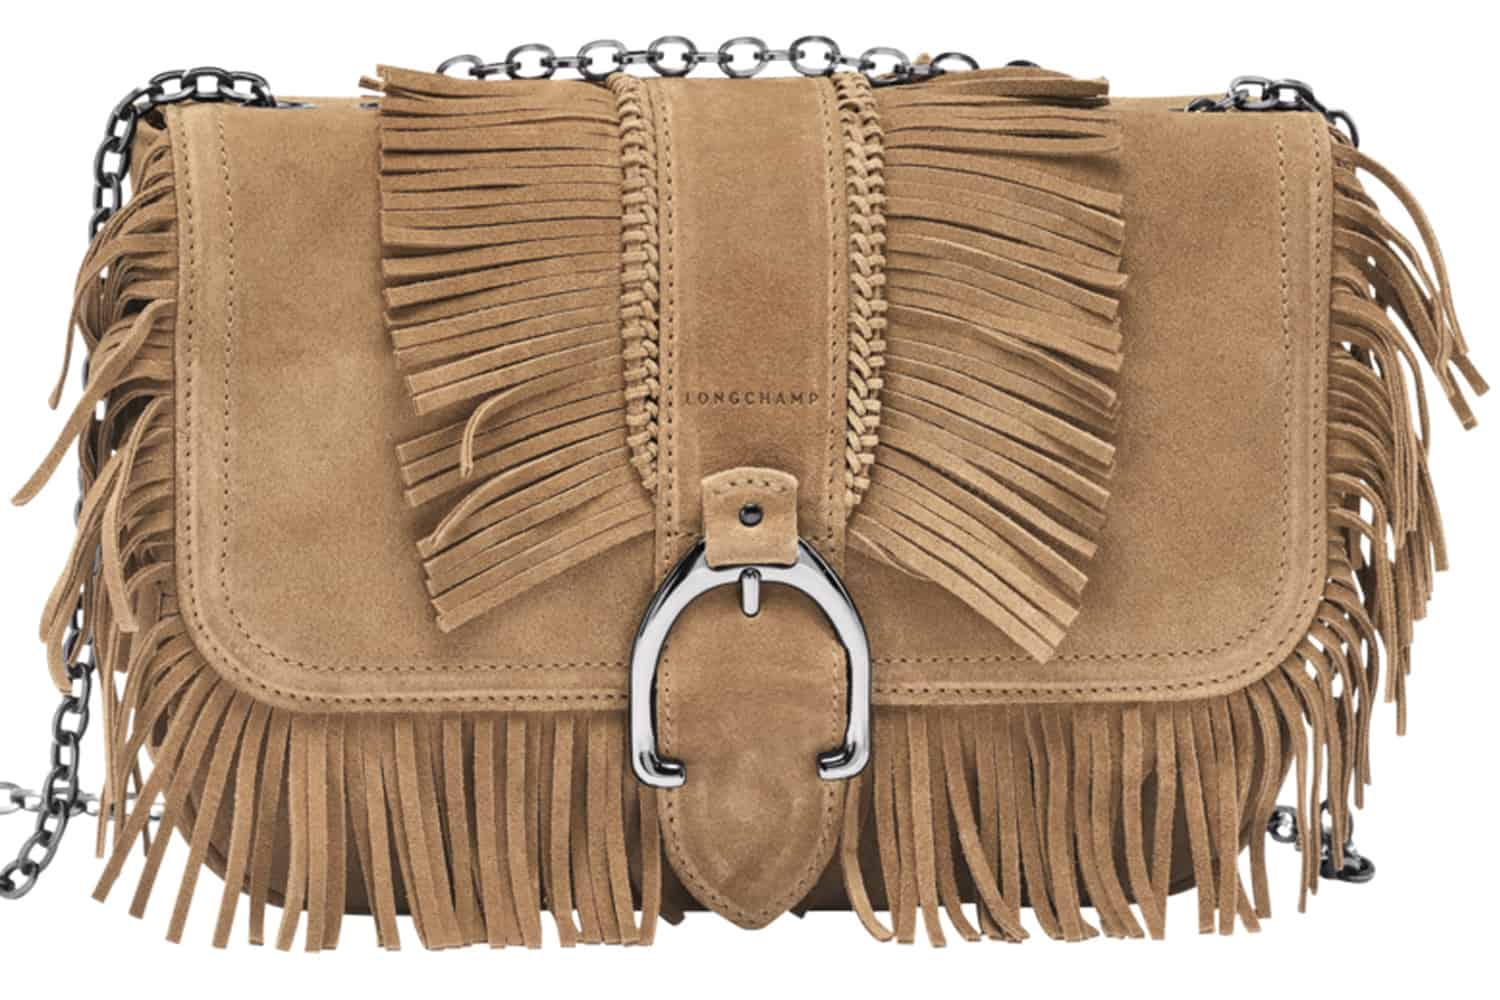 2a7cb3a7f1b6 What  This fringed-out suede purse features supple leather  delicate